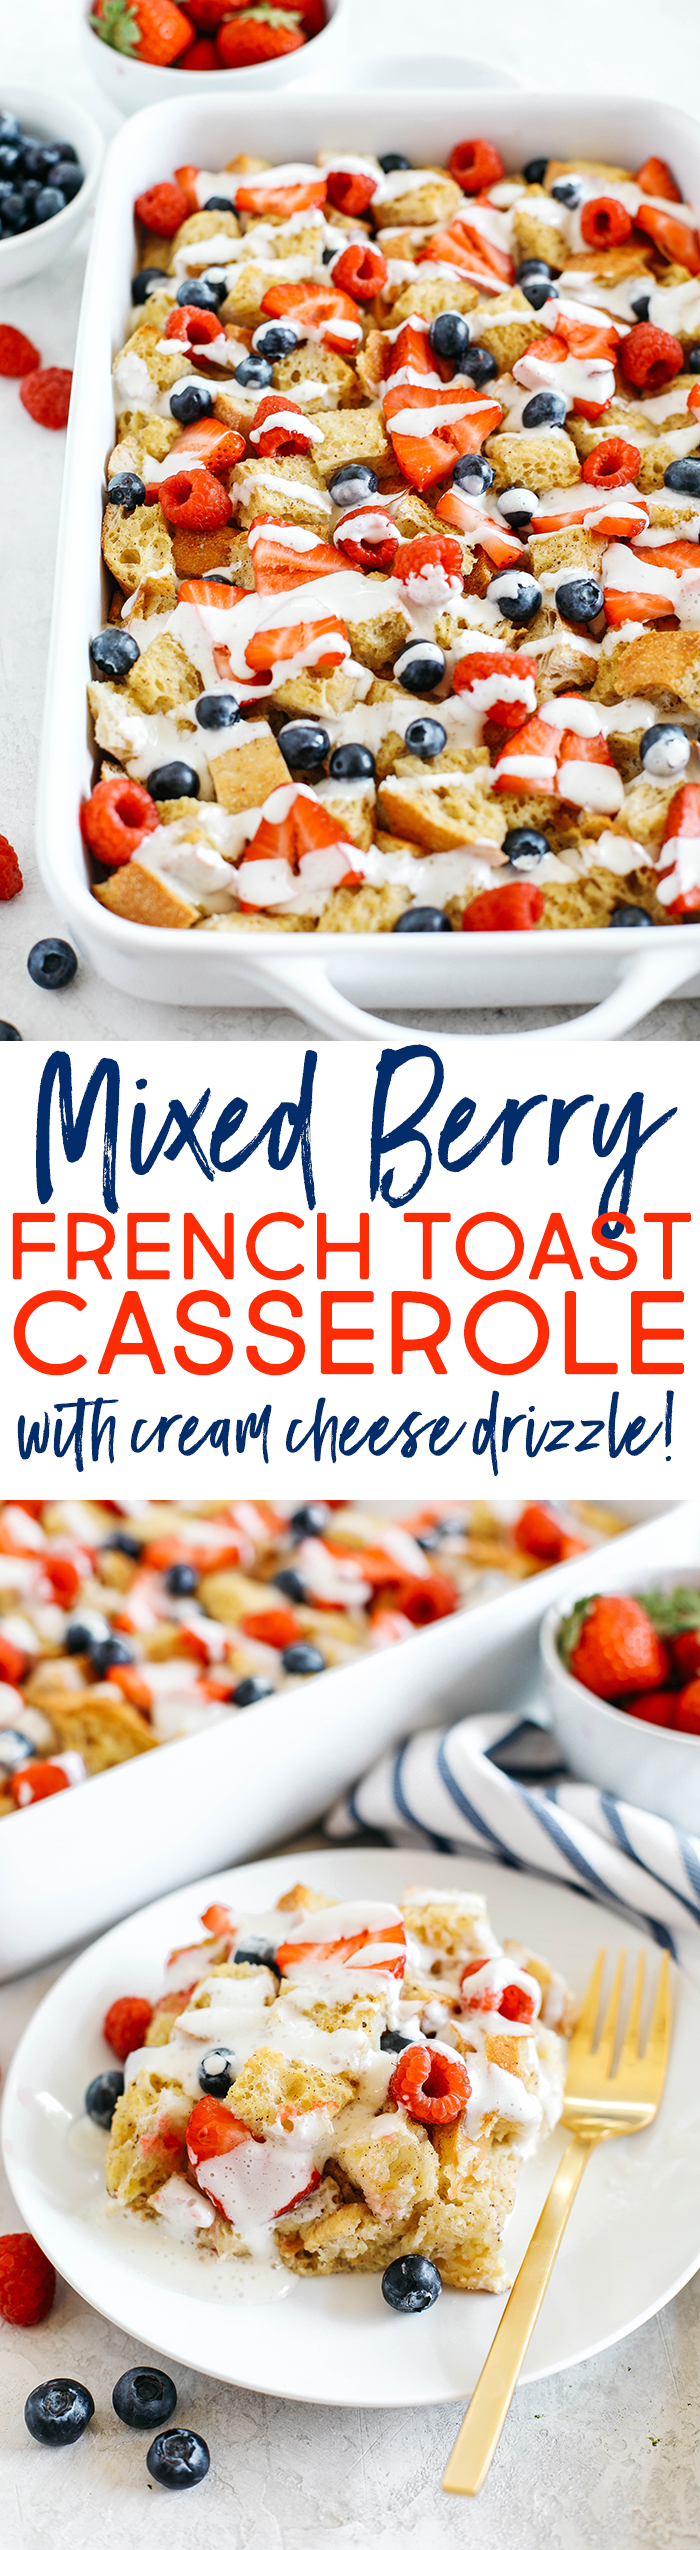 Warm and flavorful Mixed Berry French Toast Casserole with a delicious cream cheese drizzle that can easily be made the night before for the perfect morning breakfast!